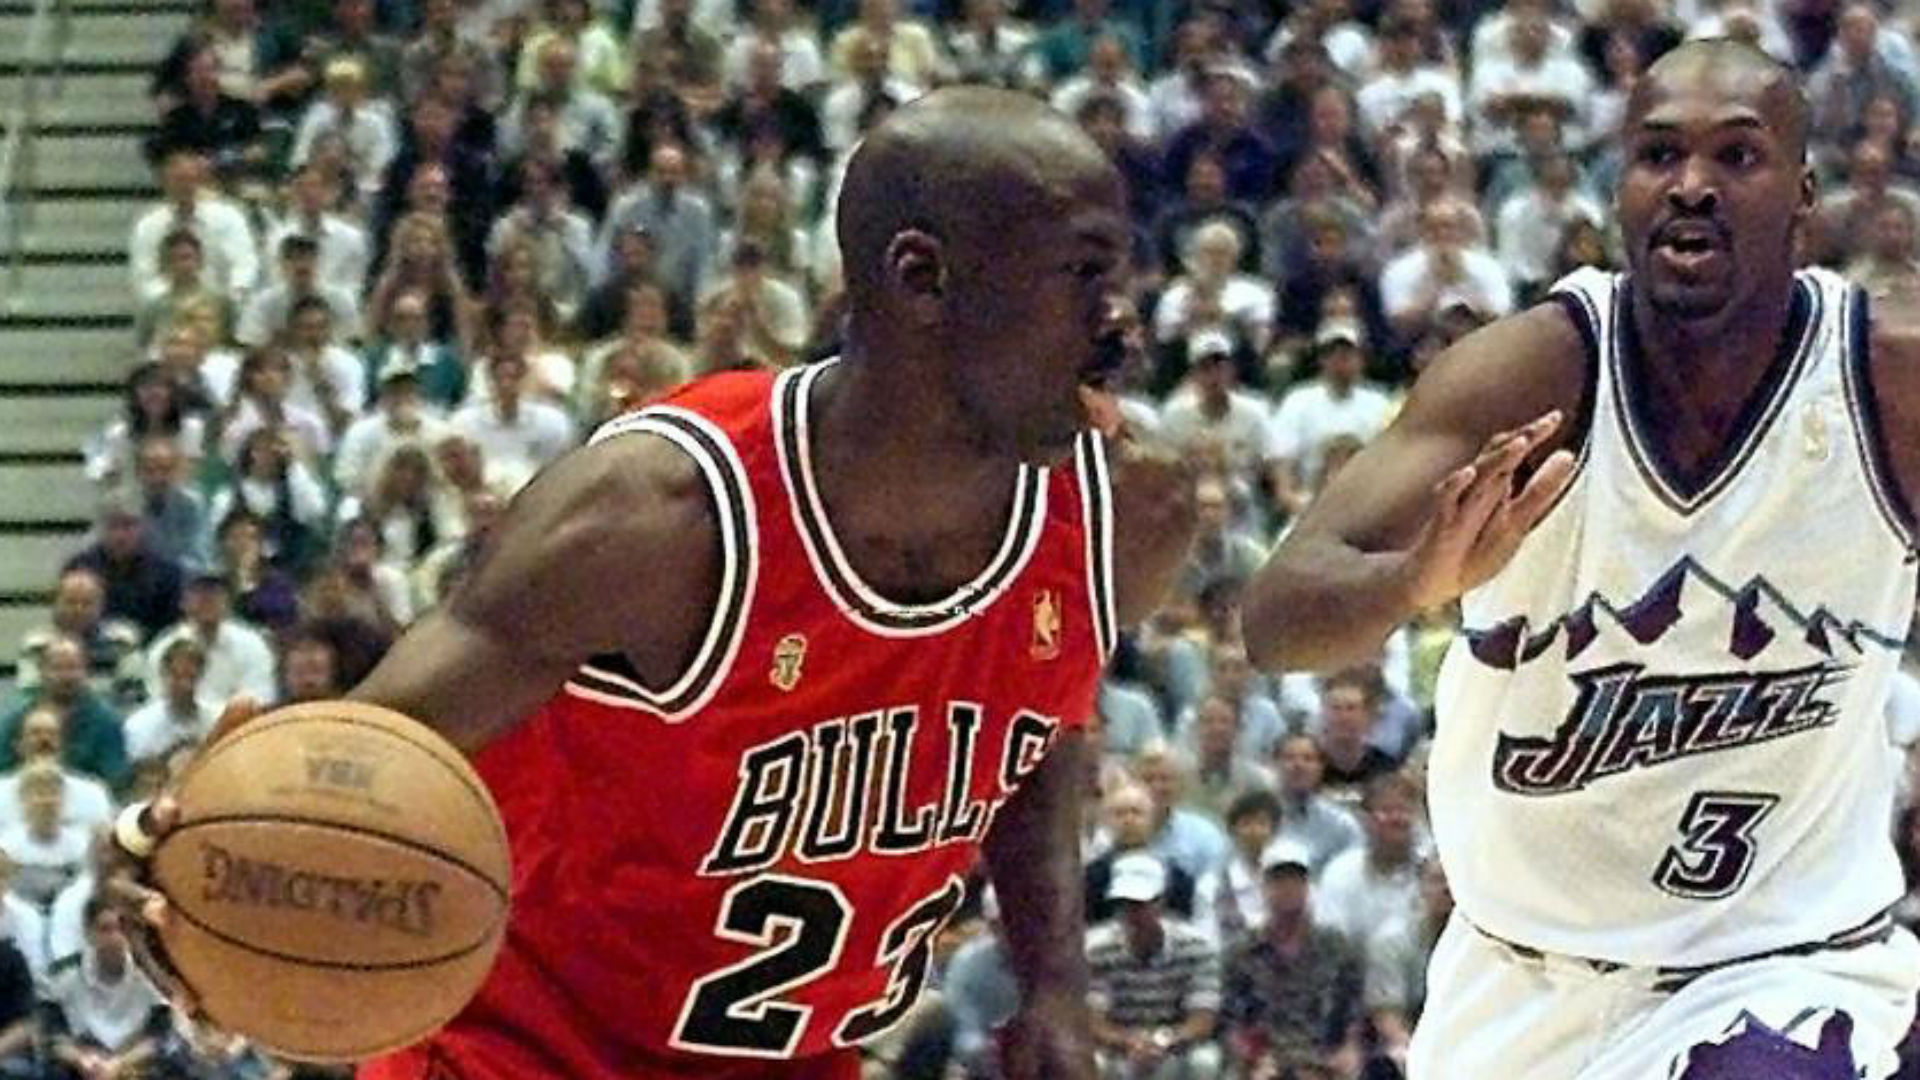 Michael Jordan's clutch play in Game 6 of 1998 NBA Finals went well beyond his last shot with Bulls 1